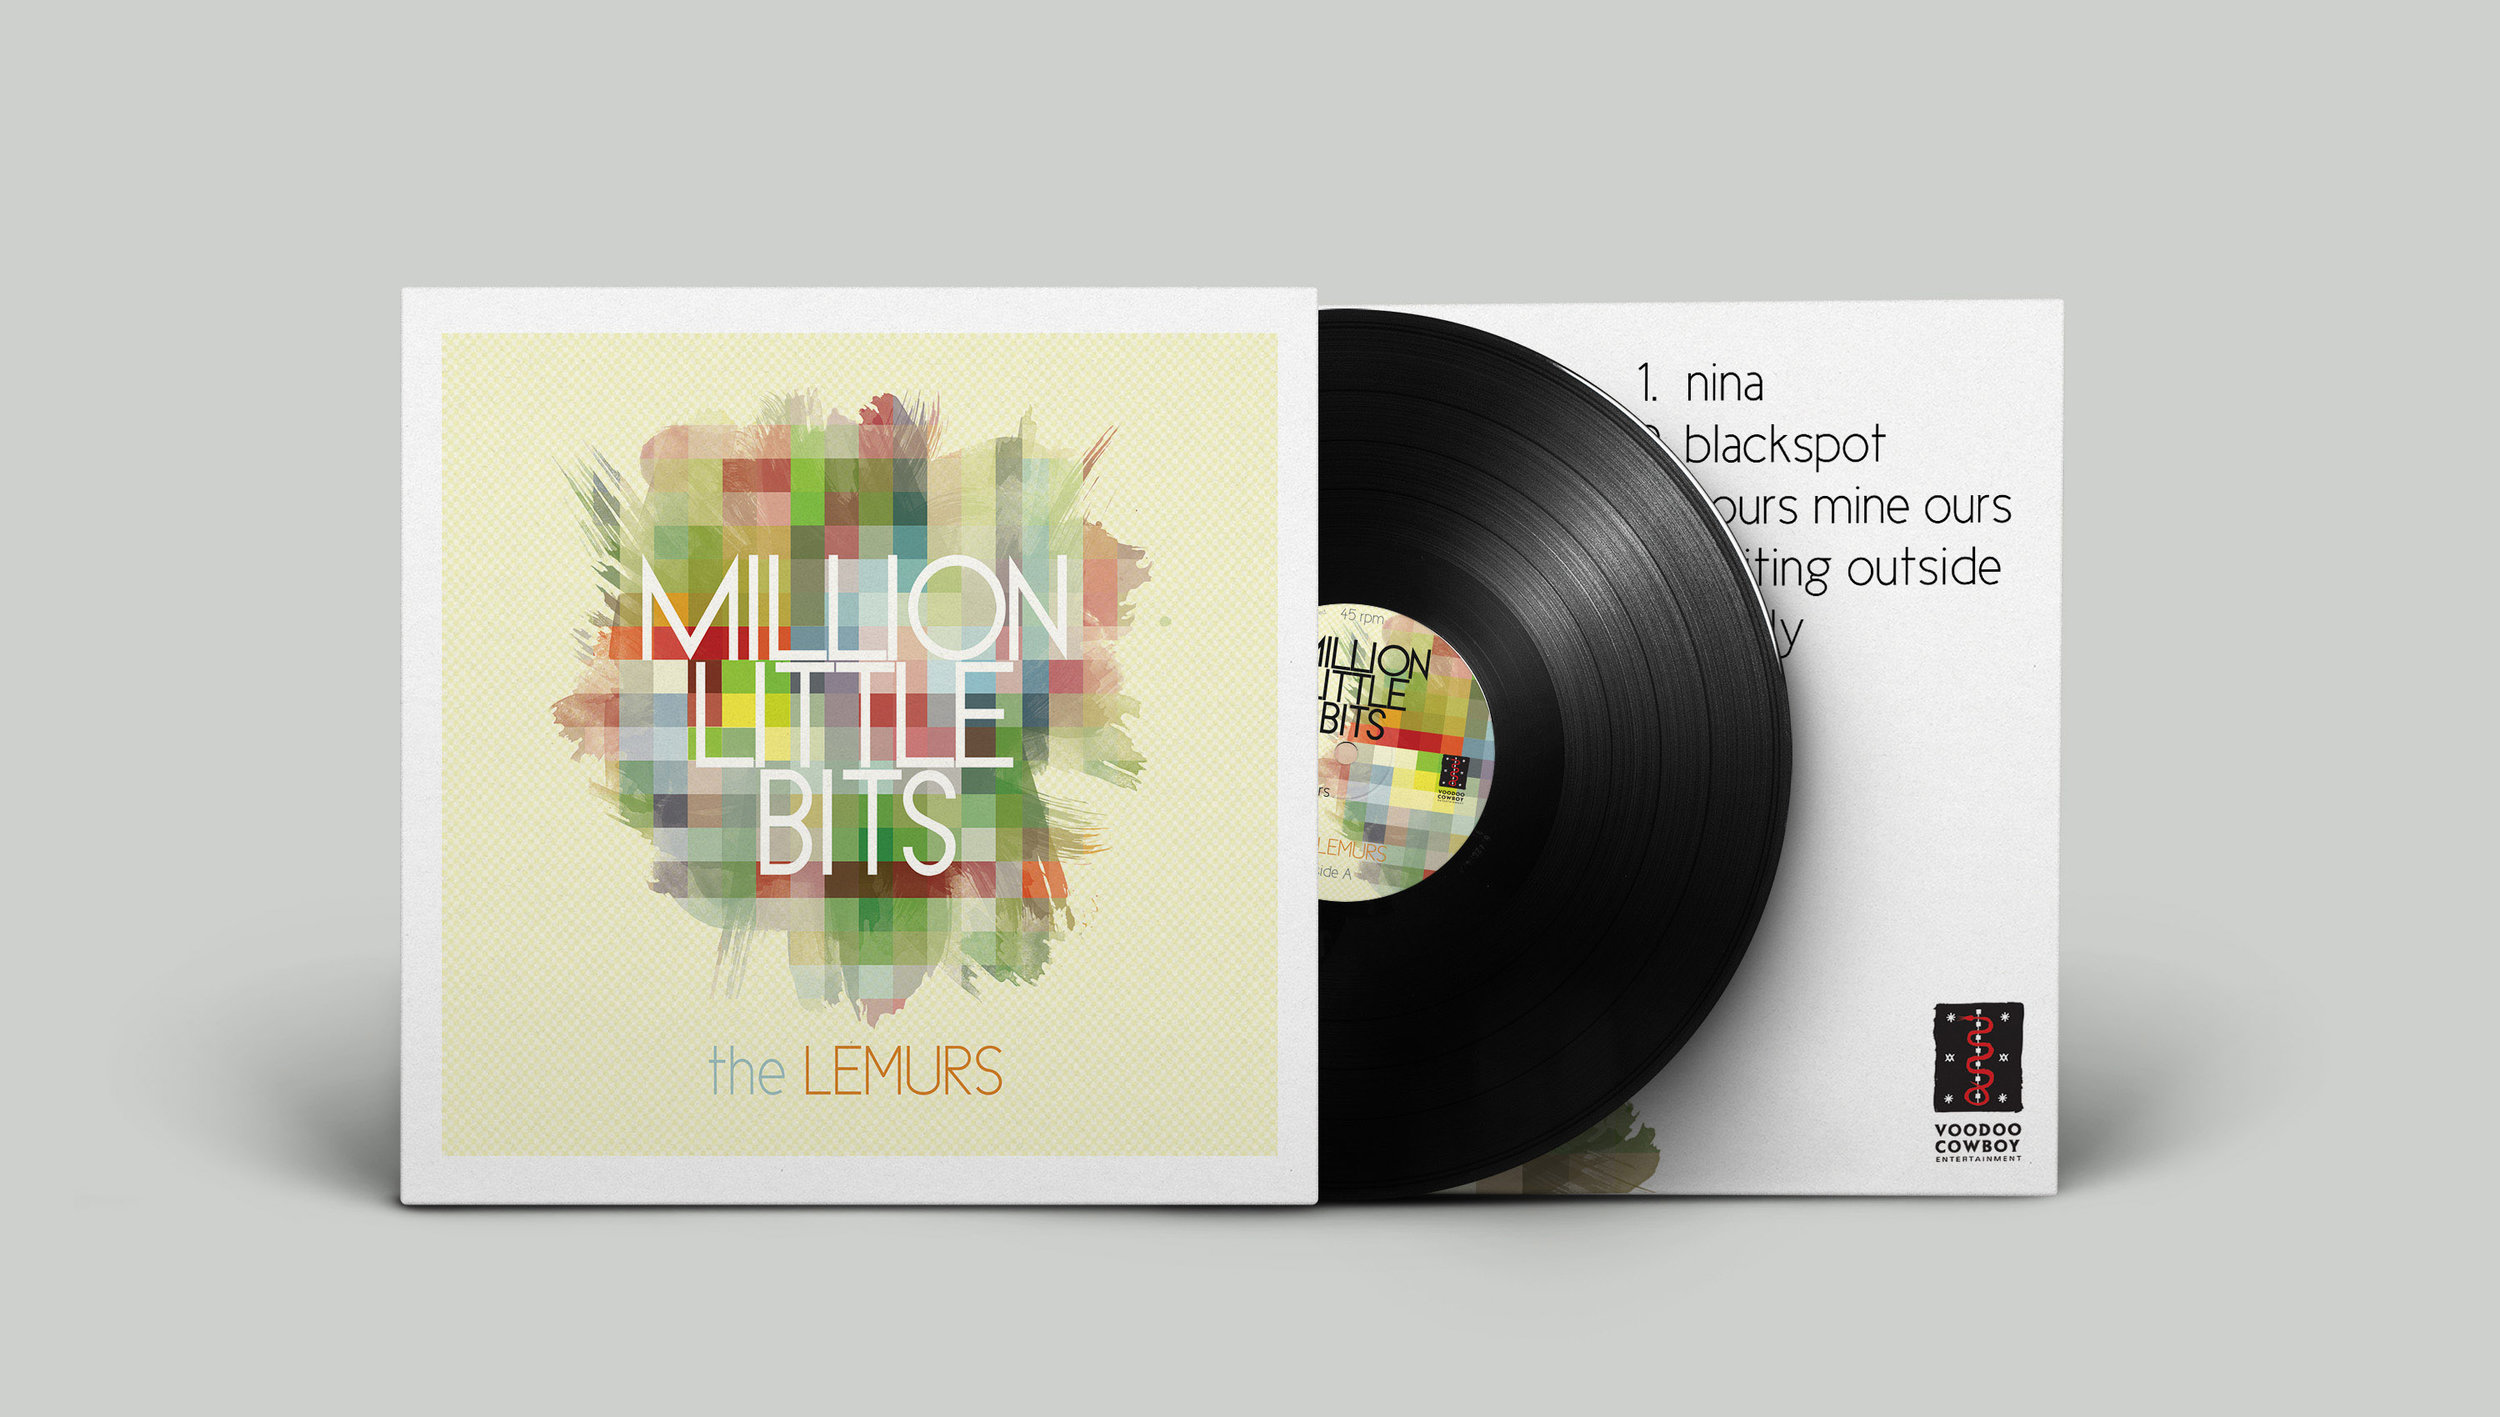 Million Little Bits  by the Lemurs -  buy it here